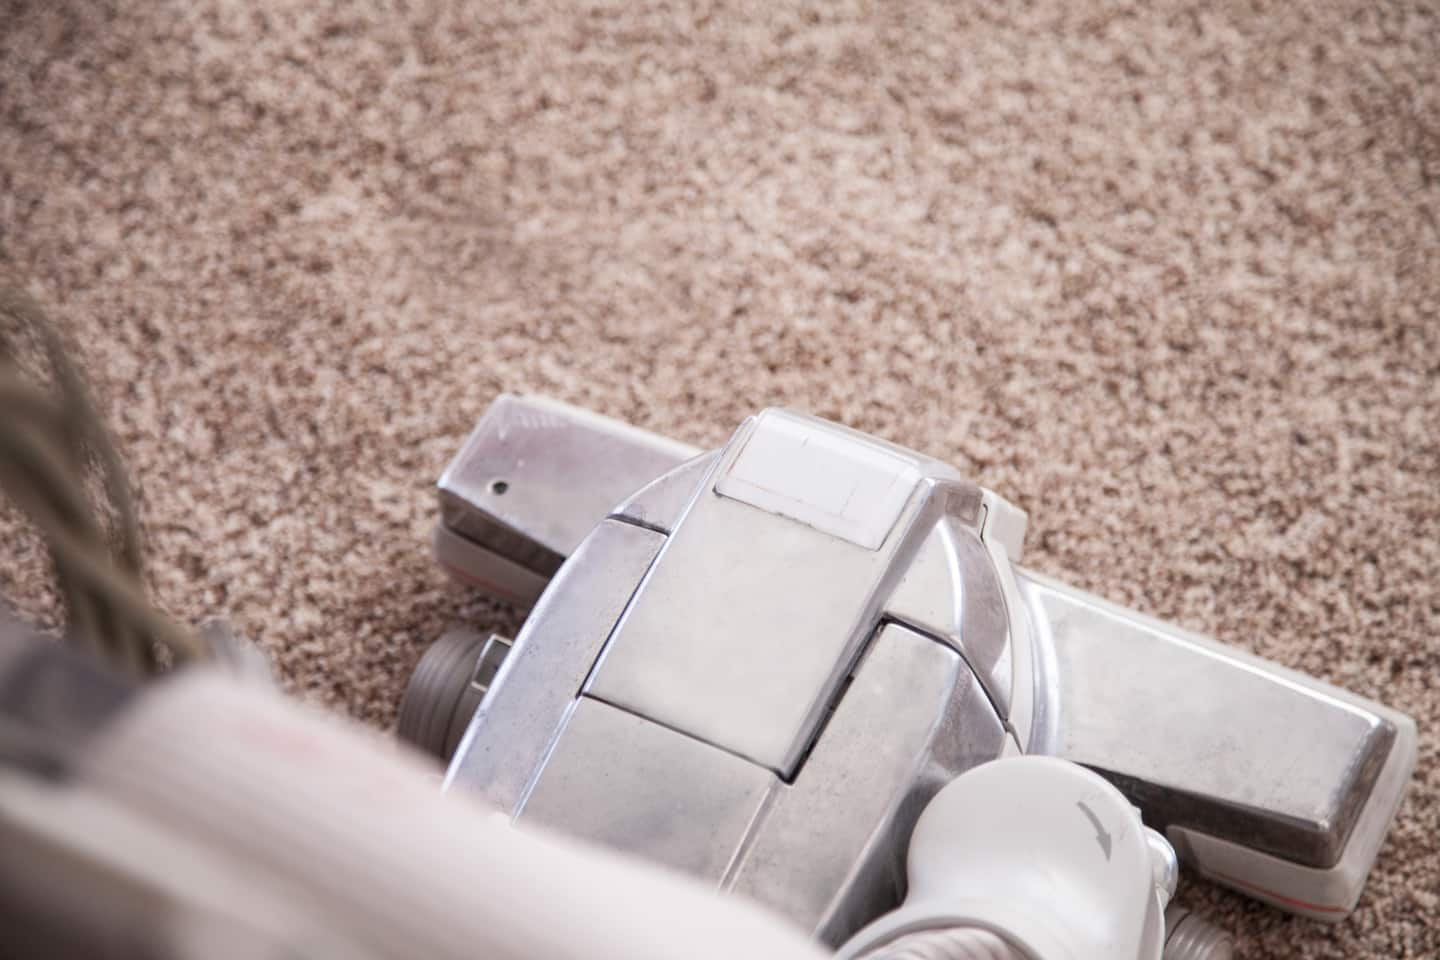 Vacuum Repair: 3 Common Problems | Angie's List